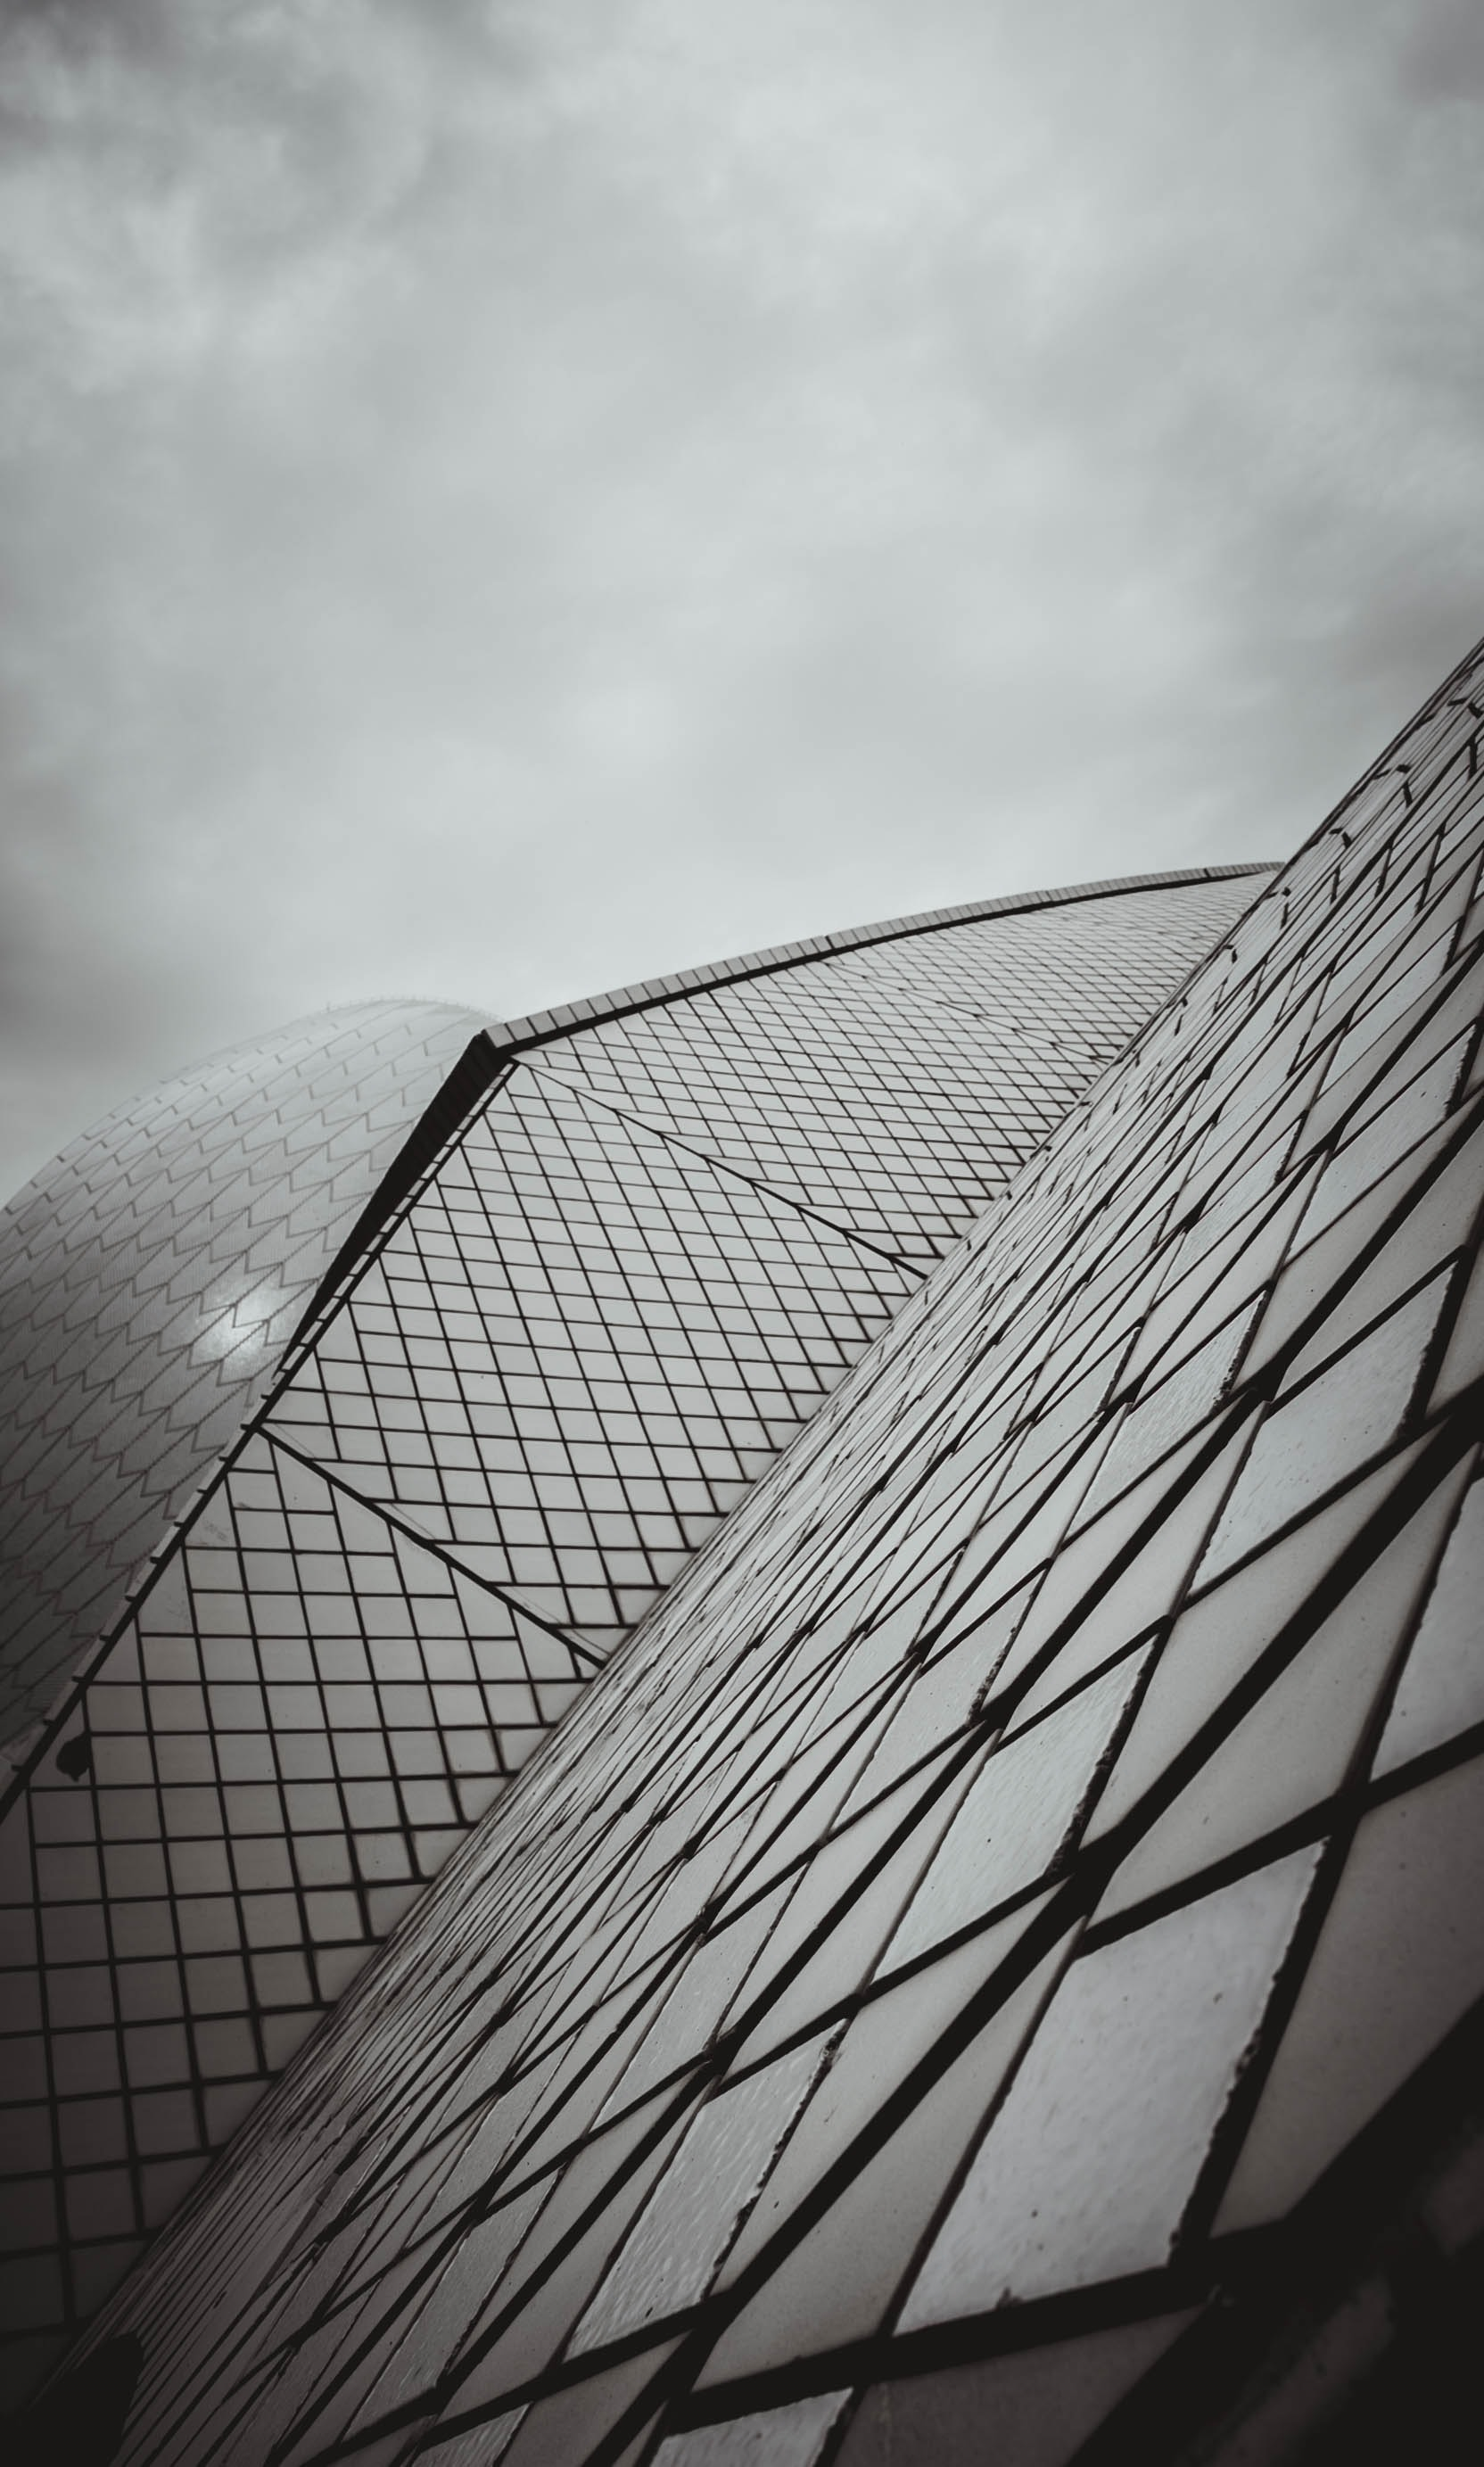 low angle photography of building under cloudy sky